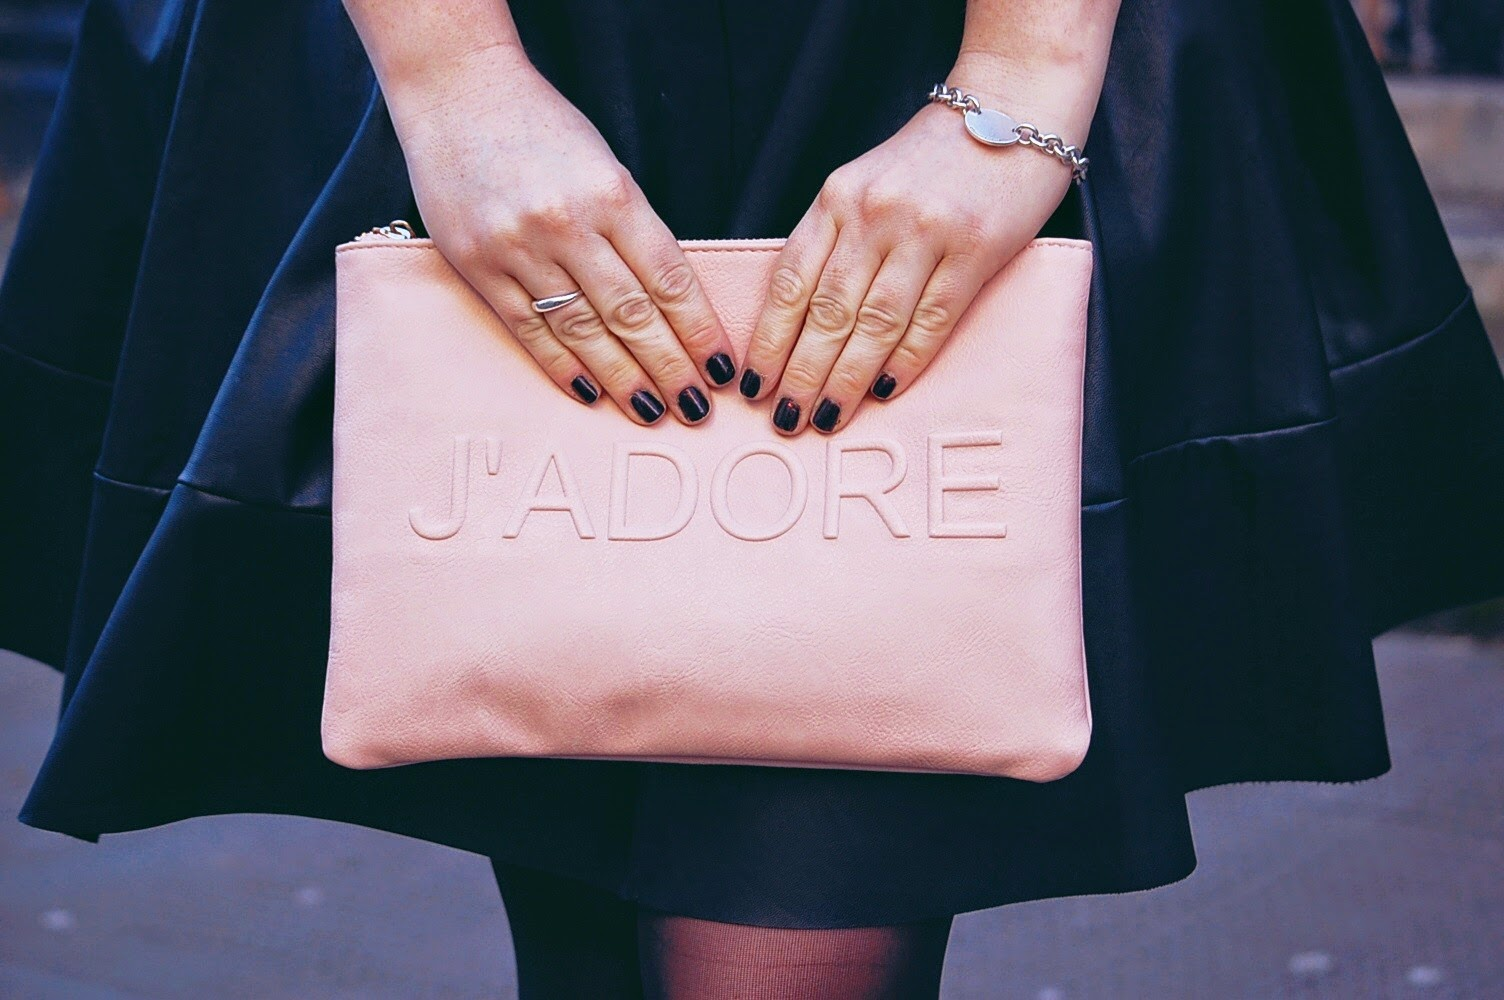 miss selfridge jadore clutch